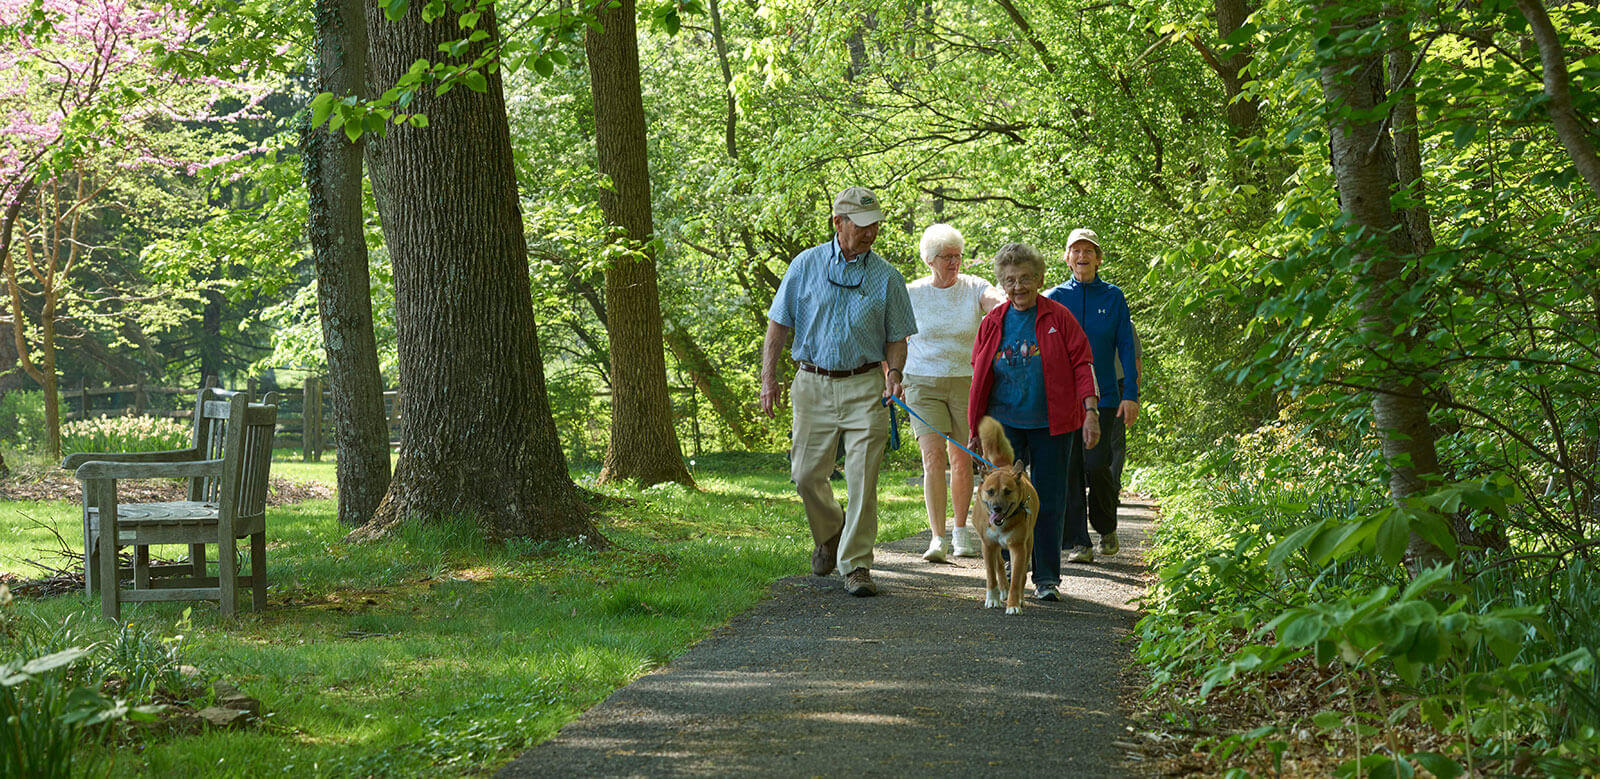 Residents walking on one of the many paths on the Foulkeways expansive campus